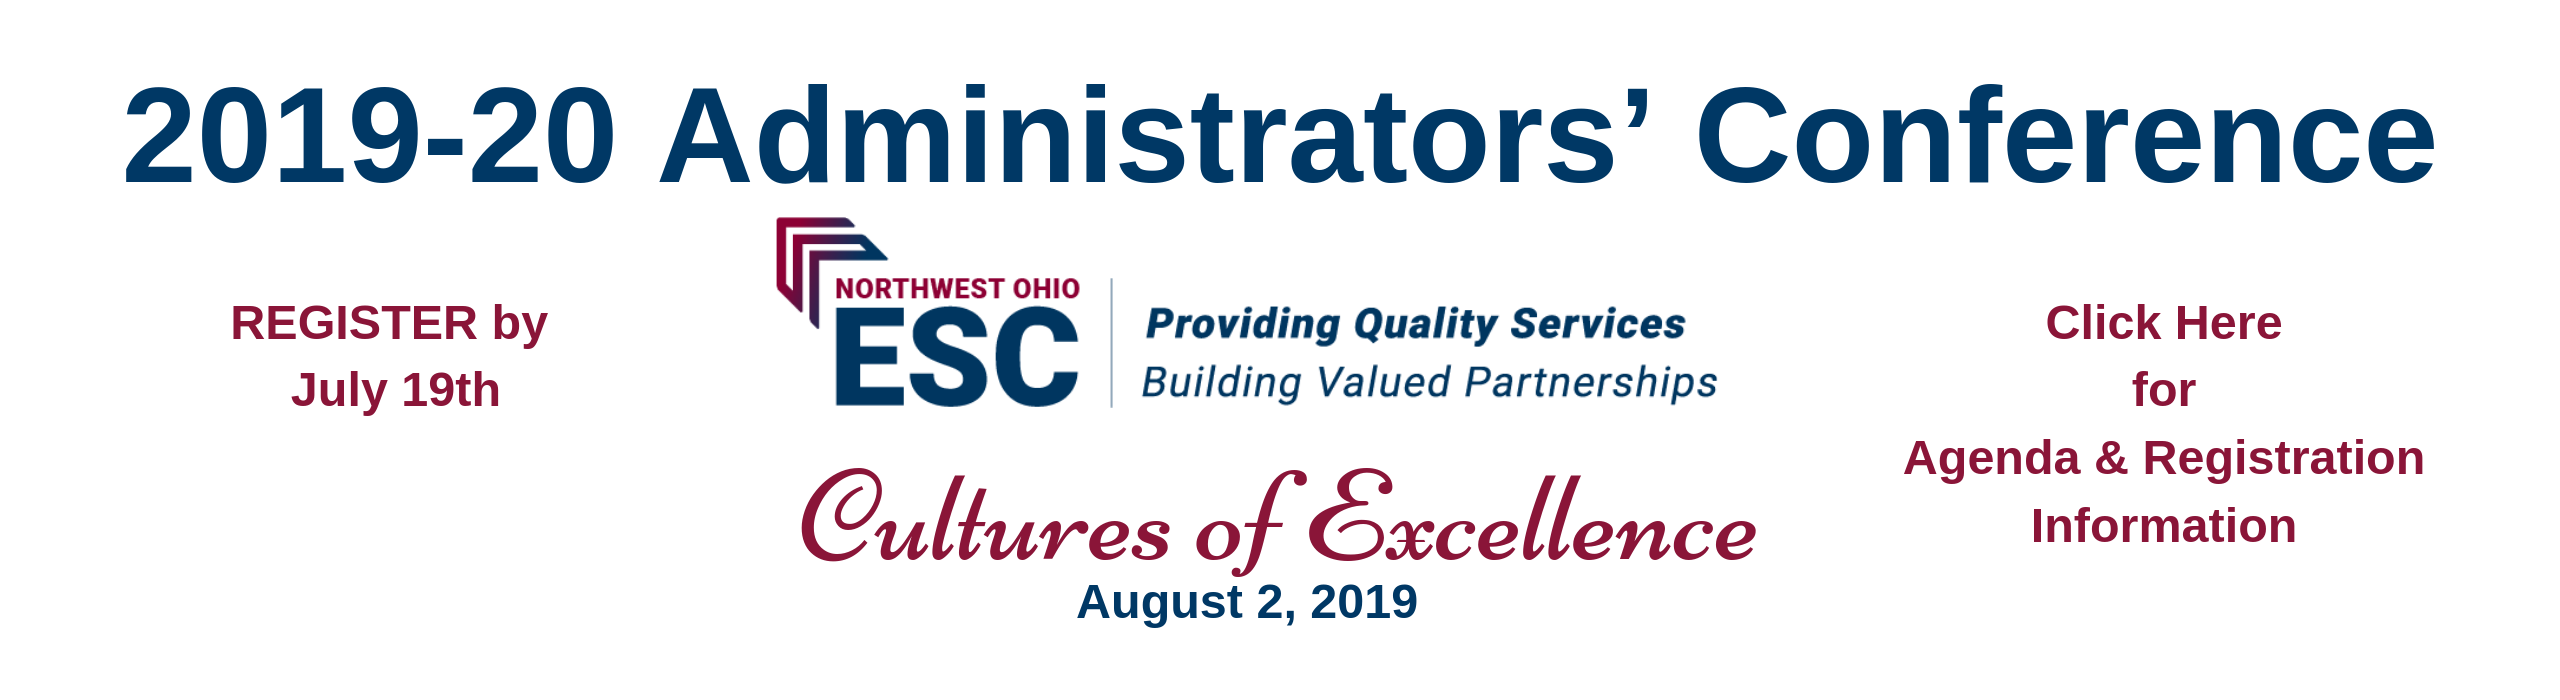 2019 Administrators' Conference banner - click for more info